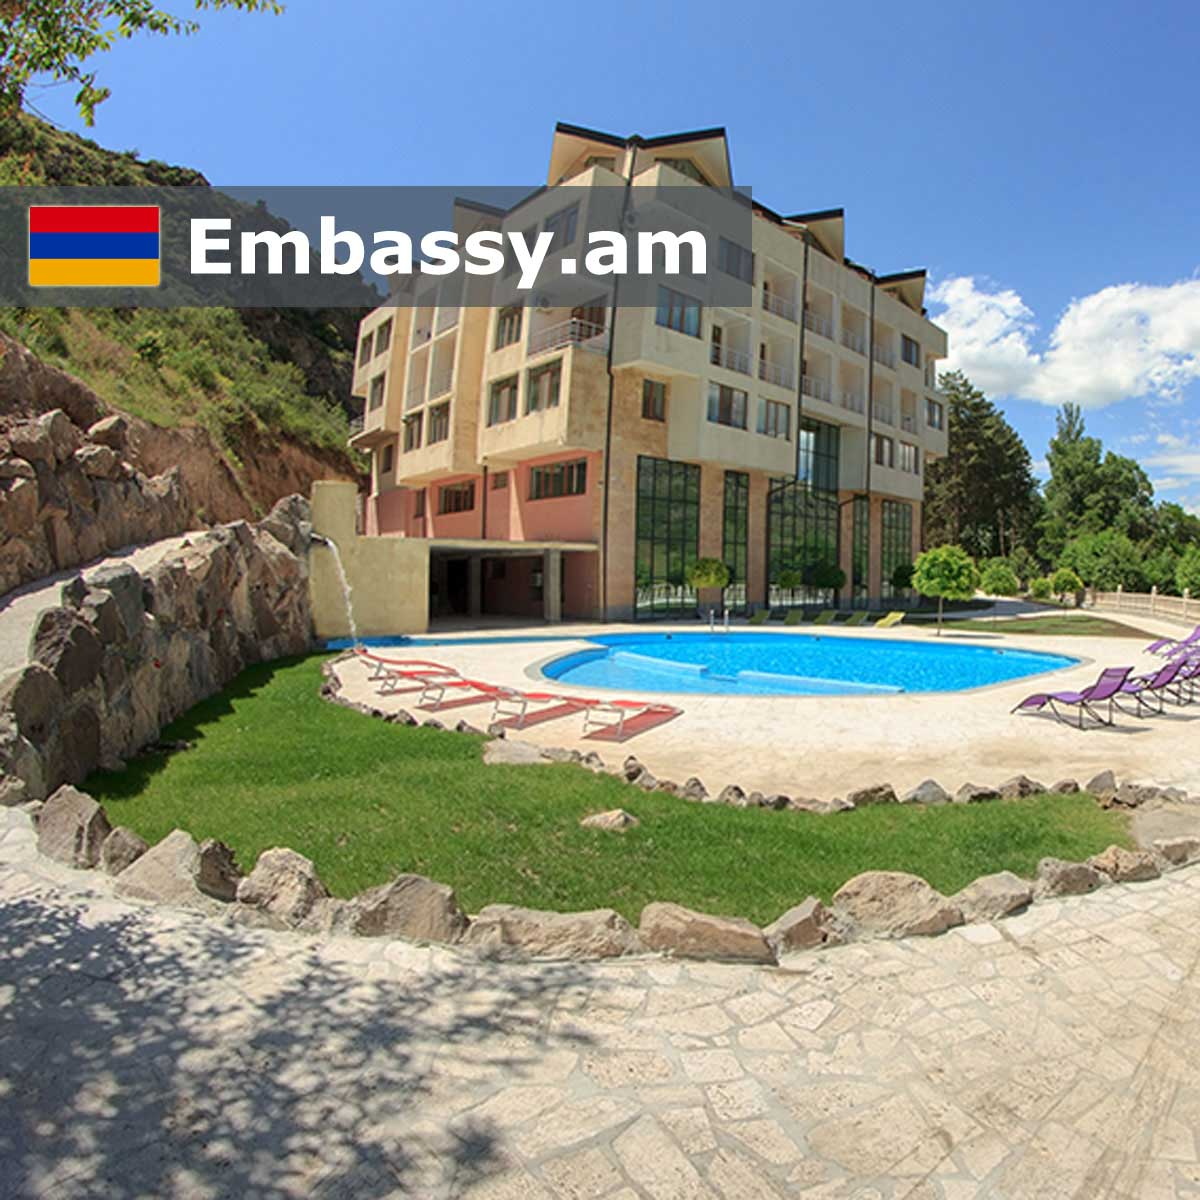 Arzni - Hotels in Armenia - Embassy.am